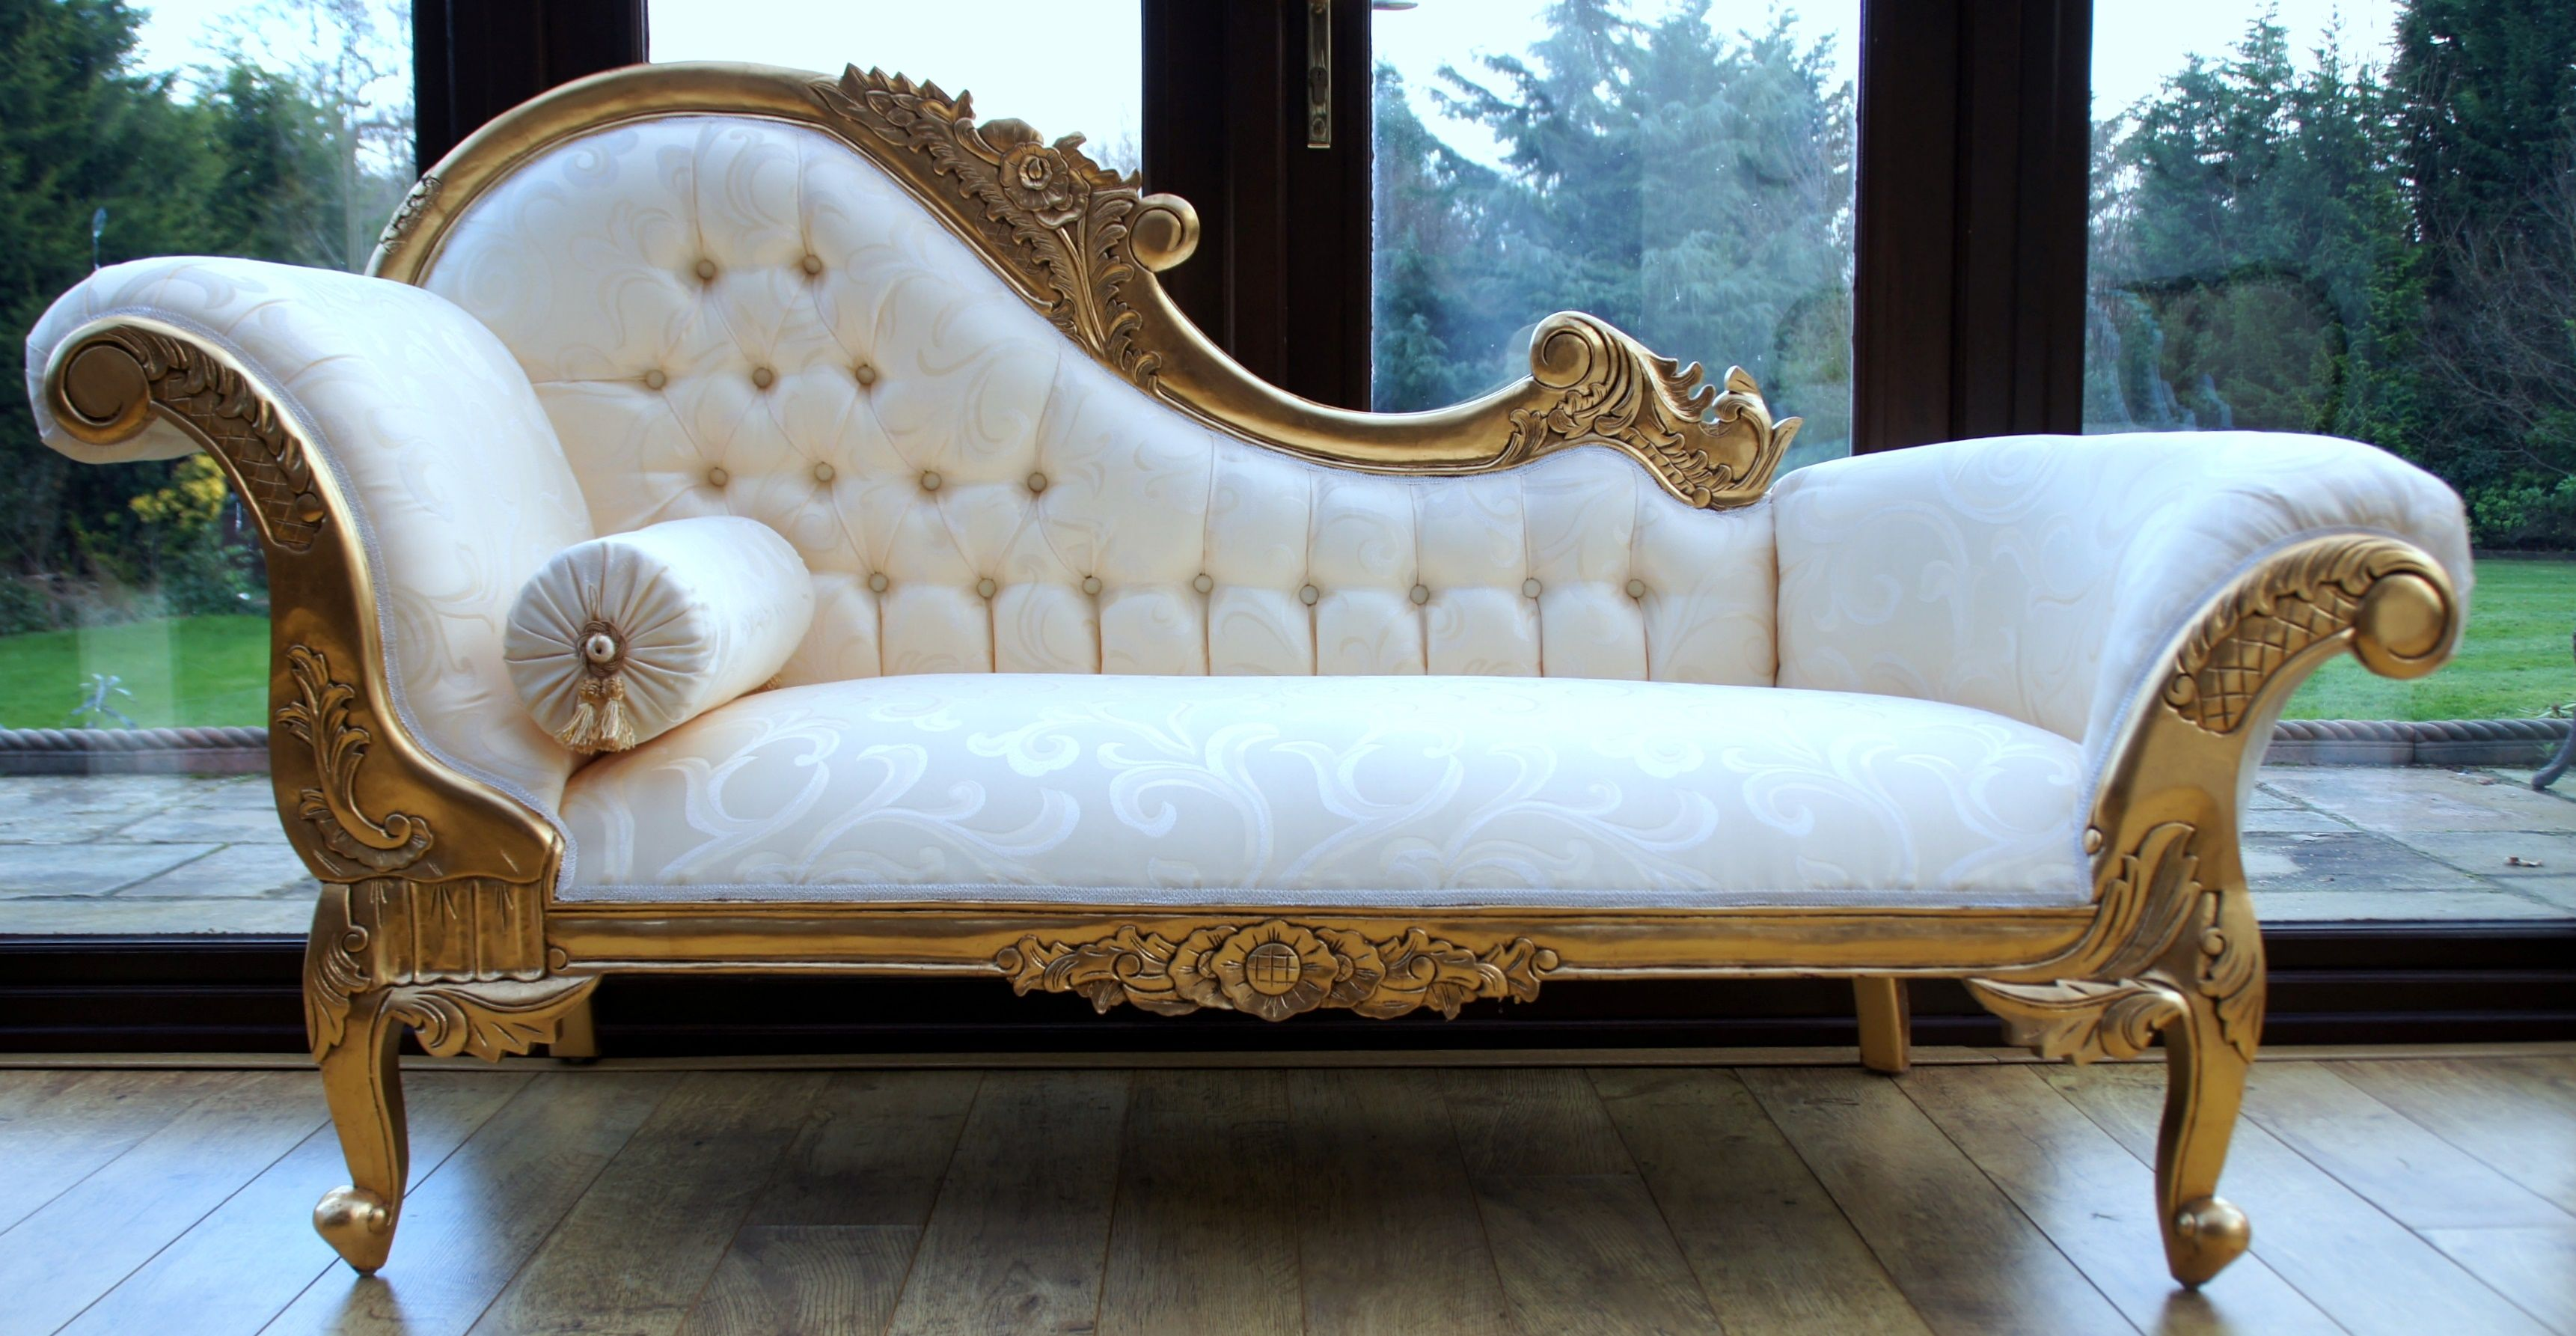 Phoebe beige linen modern chaise lounge see white - I Love The Deep Purple Here I Can Imagine A Peaceful Catnap Http Www Modenus Com Blog Interiordesign Things Modenus Loves Versailles Chaise Lo